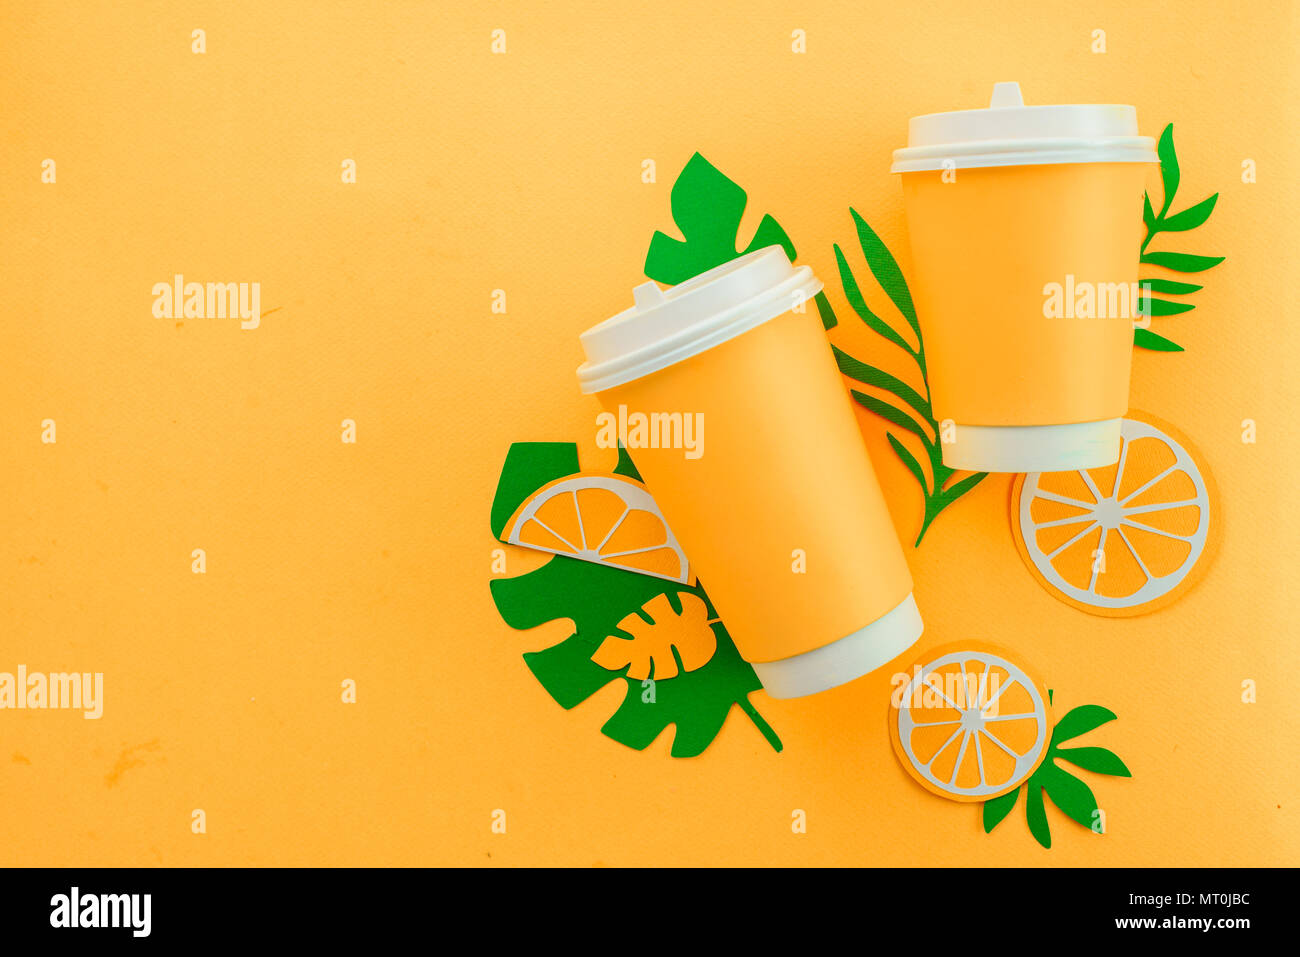 Disposable paper cup on a yellow background with tropical leaves and orange slices on a bright yellow background. Colorful summer drink concept with paper cut outs. Stock Photo